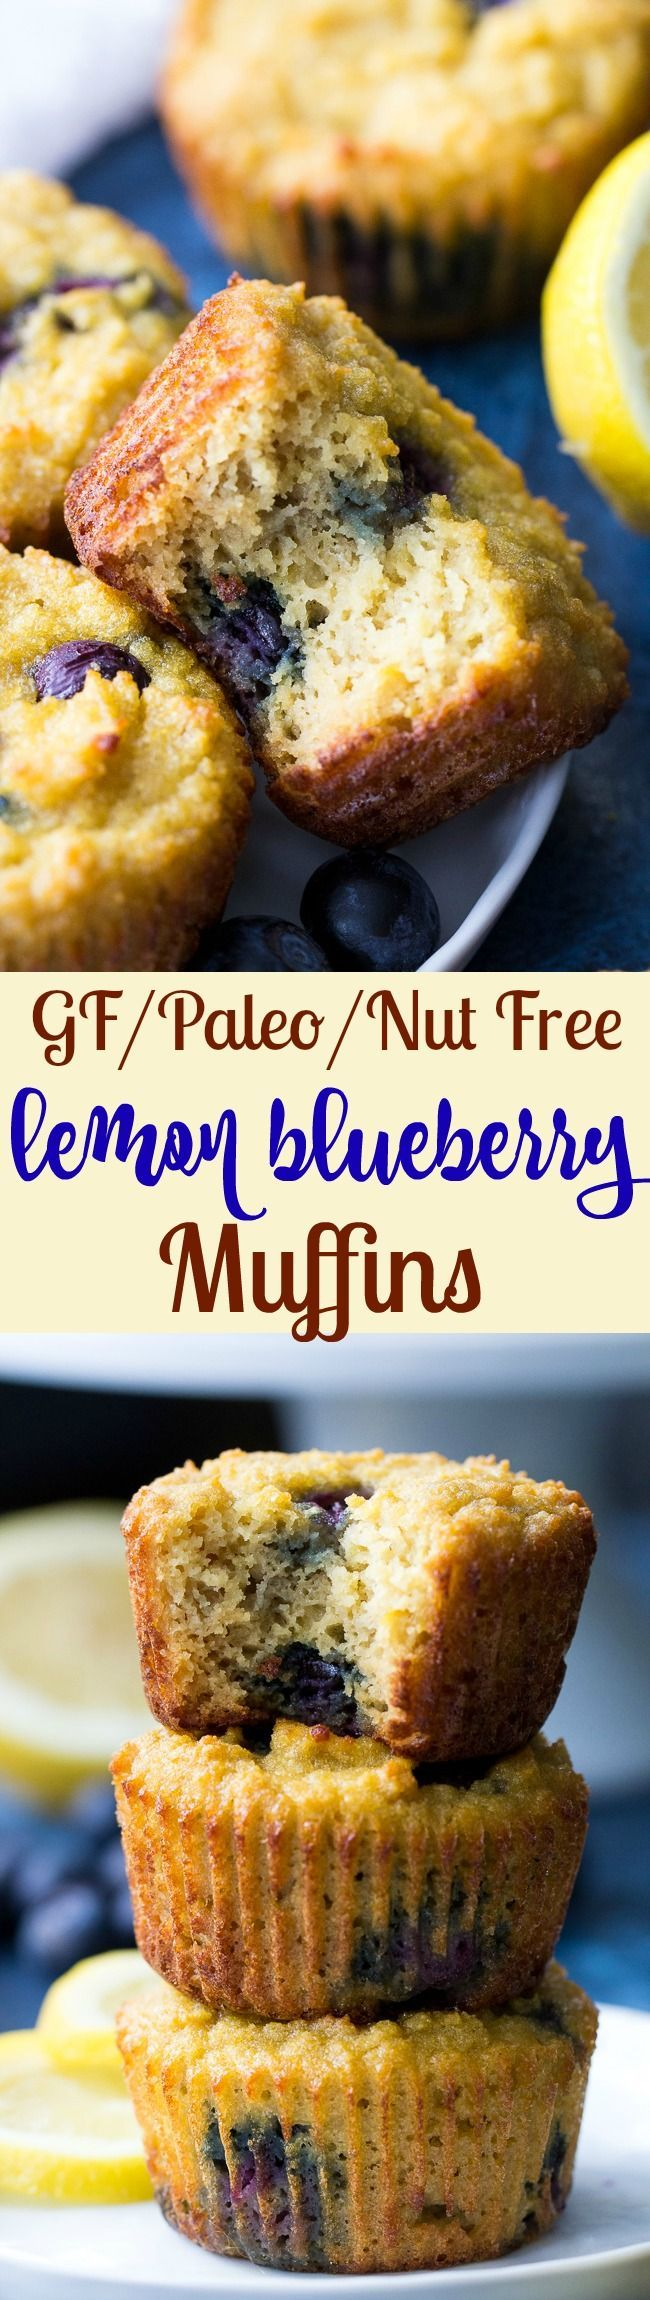 Light, sweet, moist and tender lemon blueberry muffins that are completely Paleo and nut free.  They're made with a blend of coconut and tapioca flour for a healthy breakfast or snack!  Gluten free, dairy free, kid-approved and easy. (Low Carb Cookies Lemon)